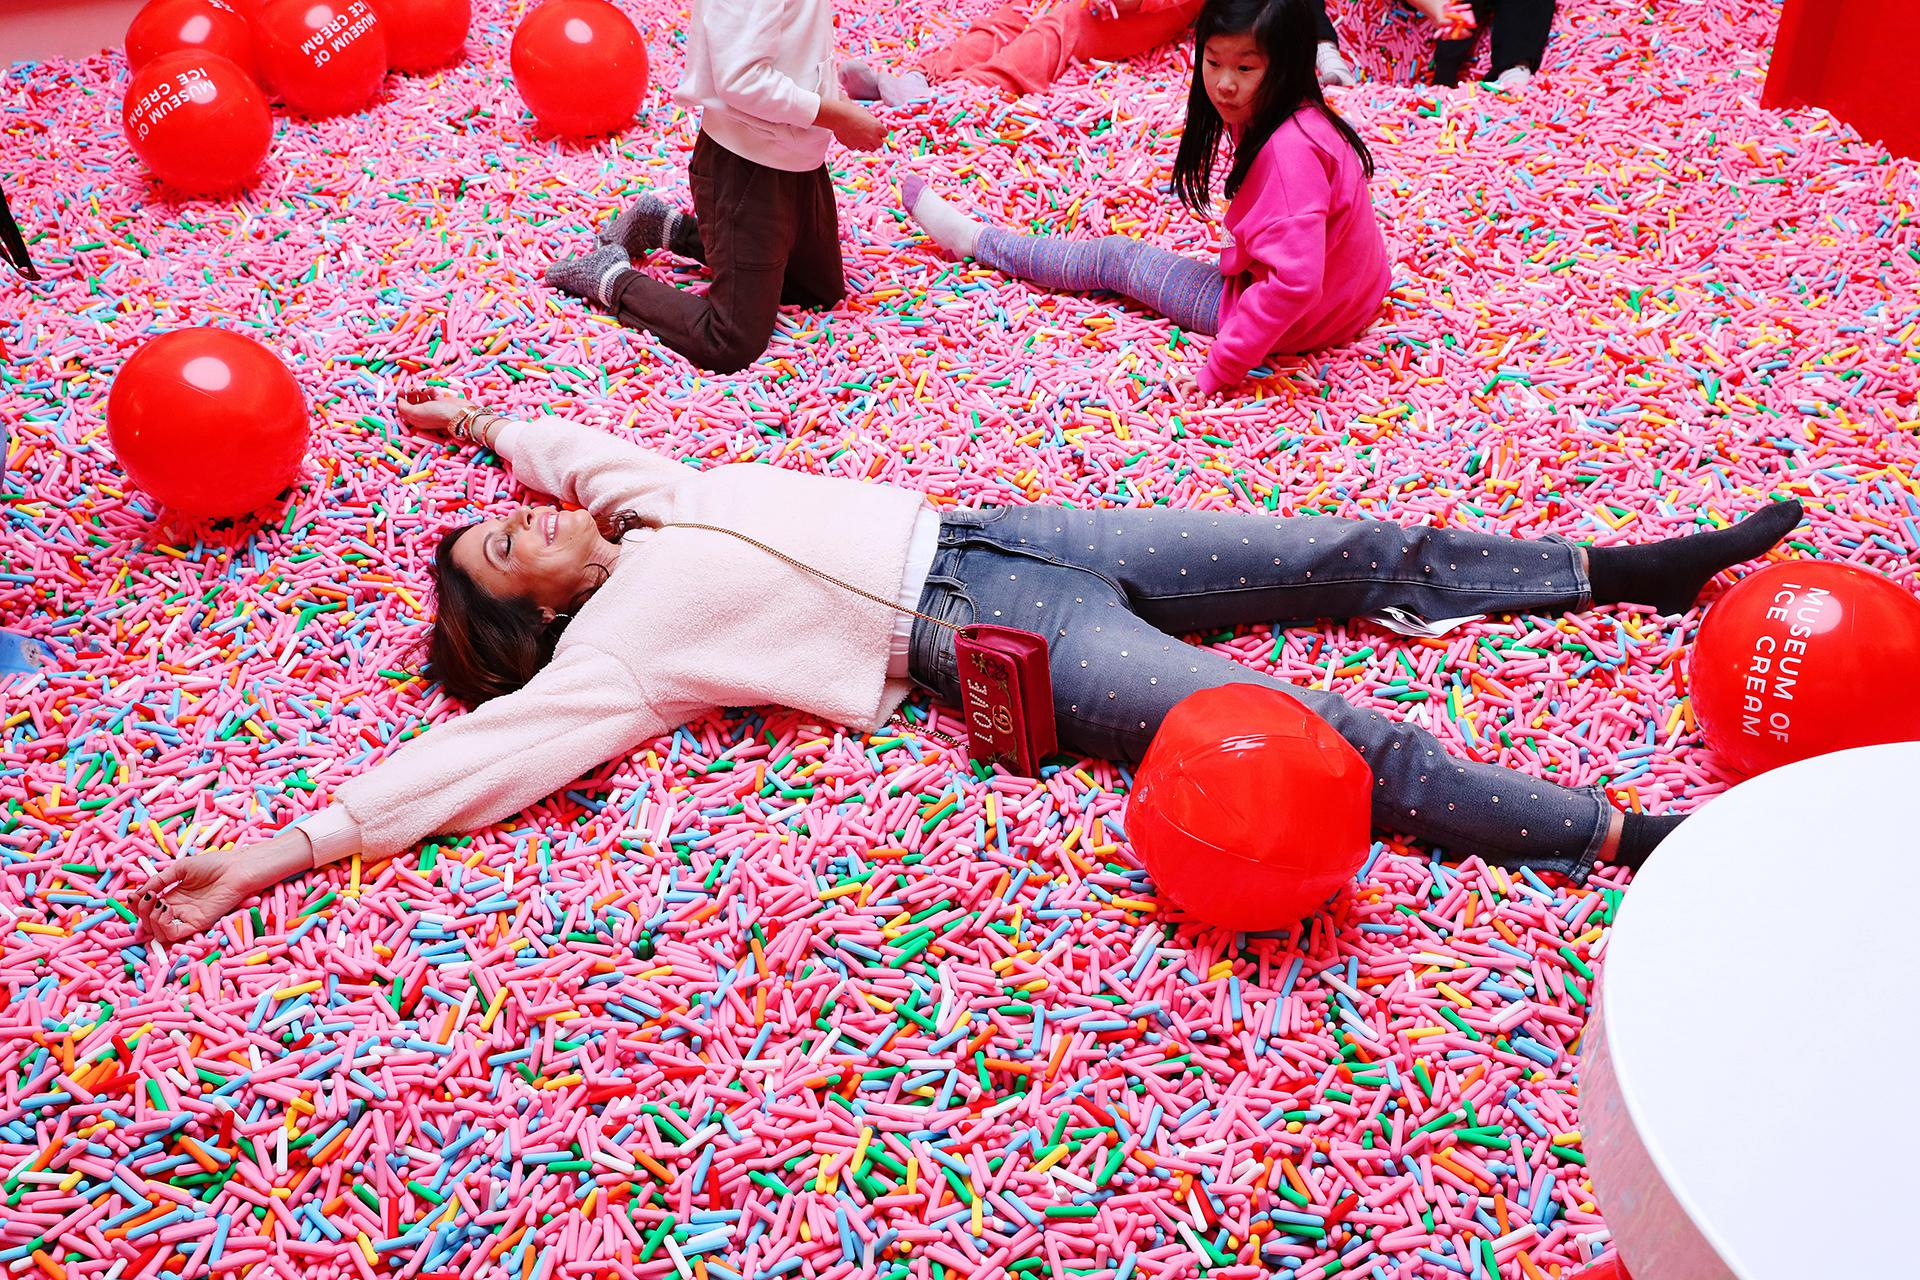 """The founder of Skinnygirl and a star of """"The Real Housewives of New York City,"""" Bethenny Frankel took a dip in the pool of nearly 100 million anti-microbial sprinkles at the Manhattan museum on opening night."""